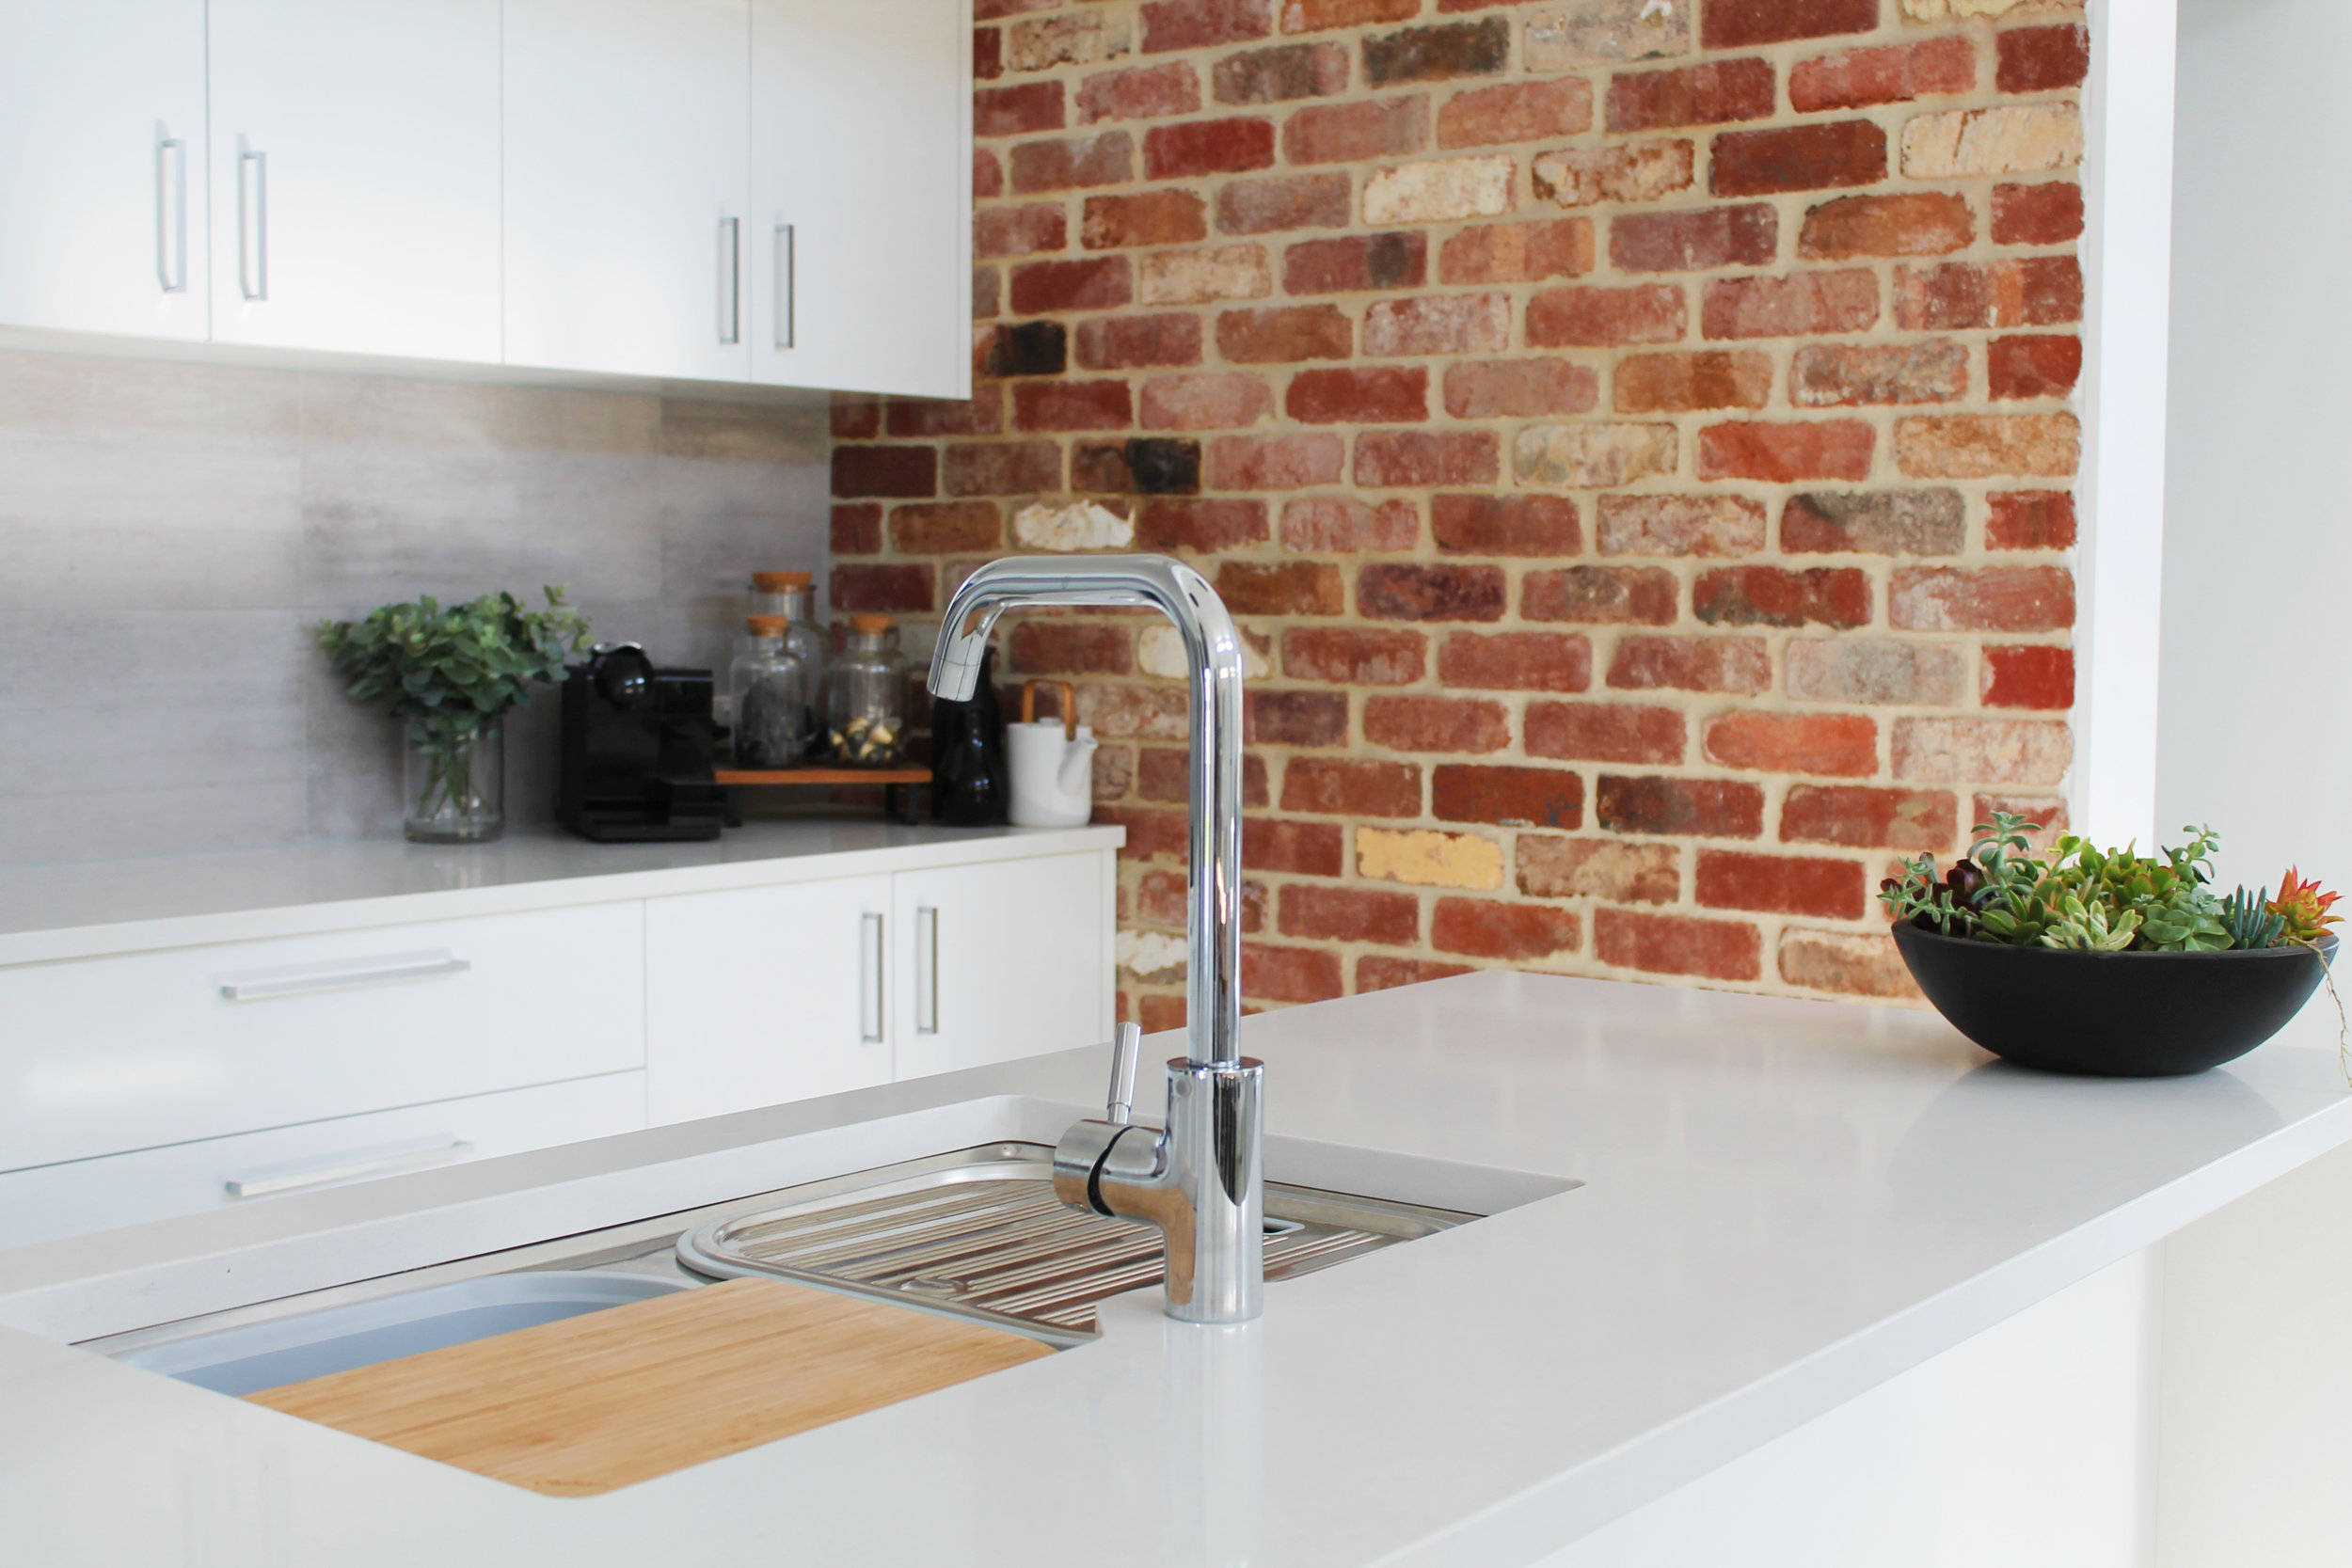 Industrial Styled Kitchen - Recycled Red Brick Exposed